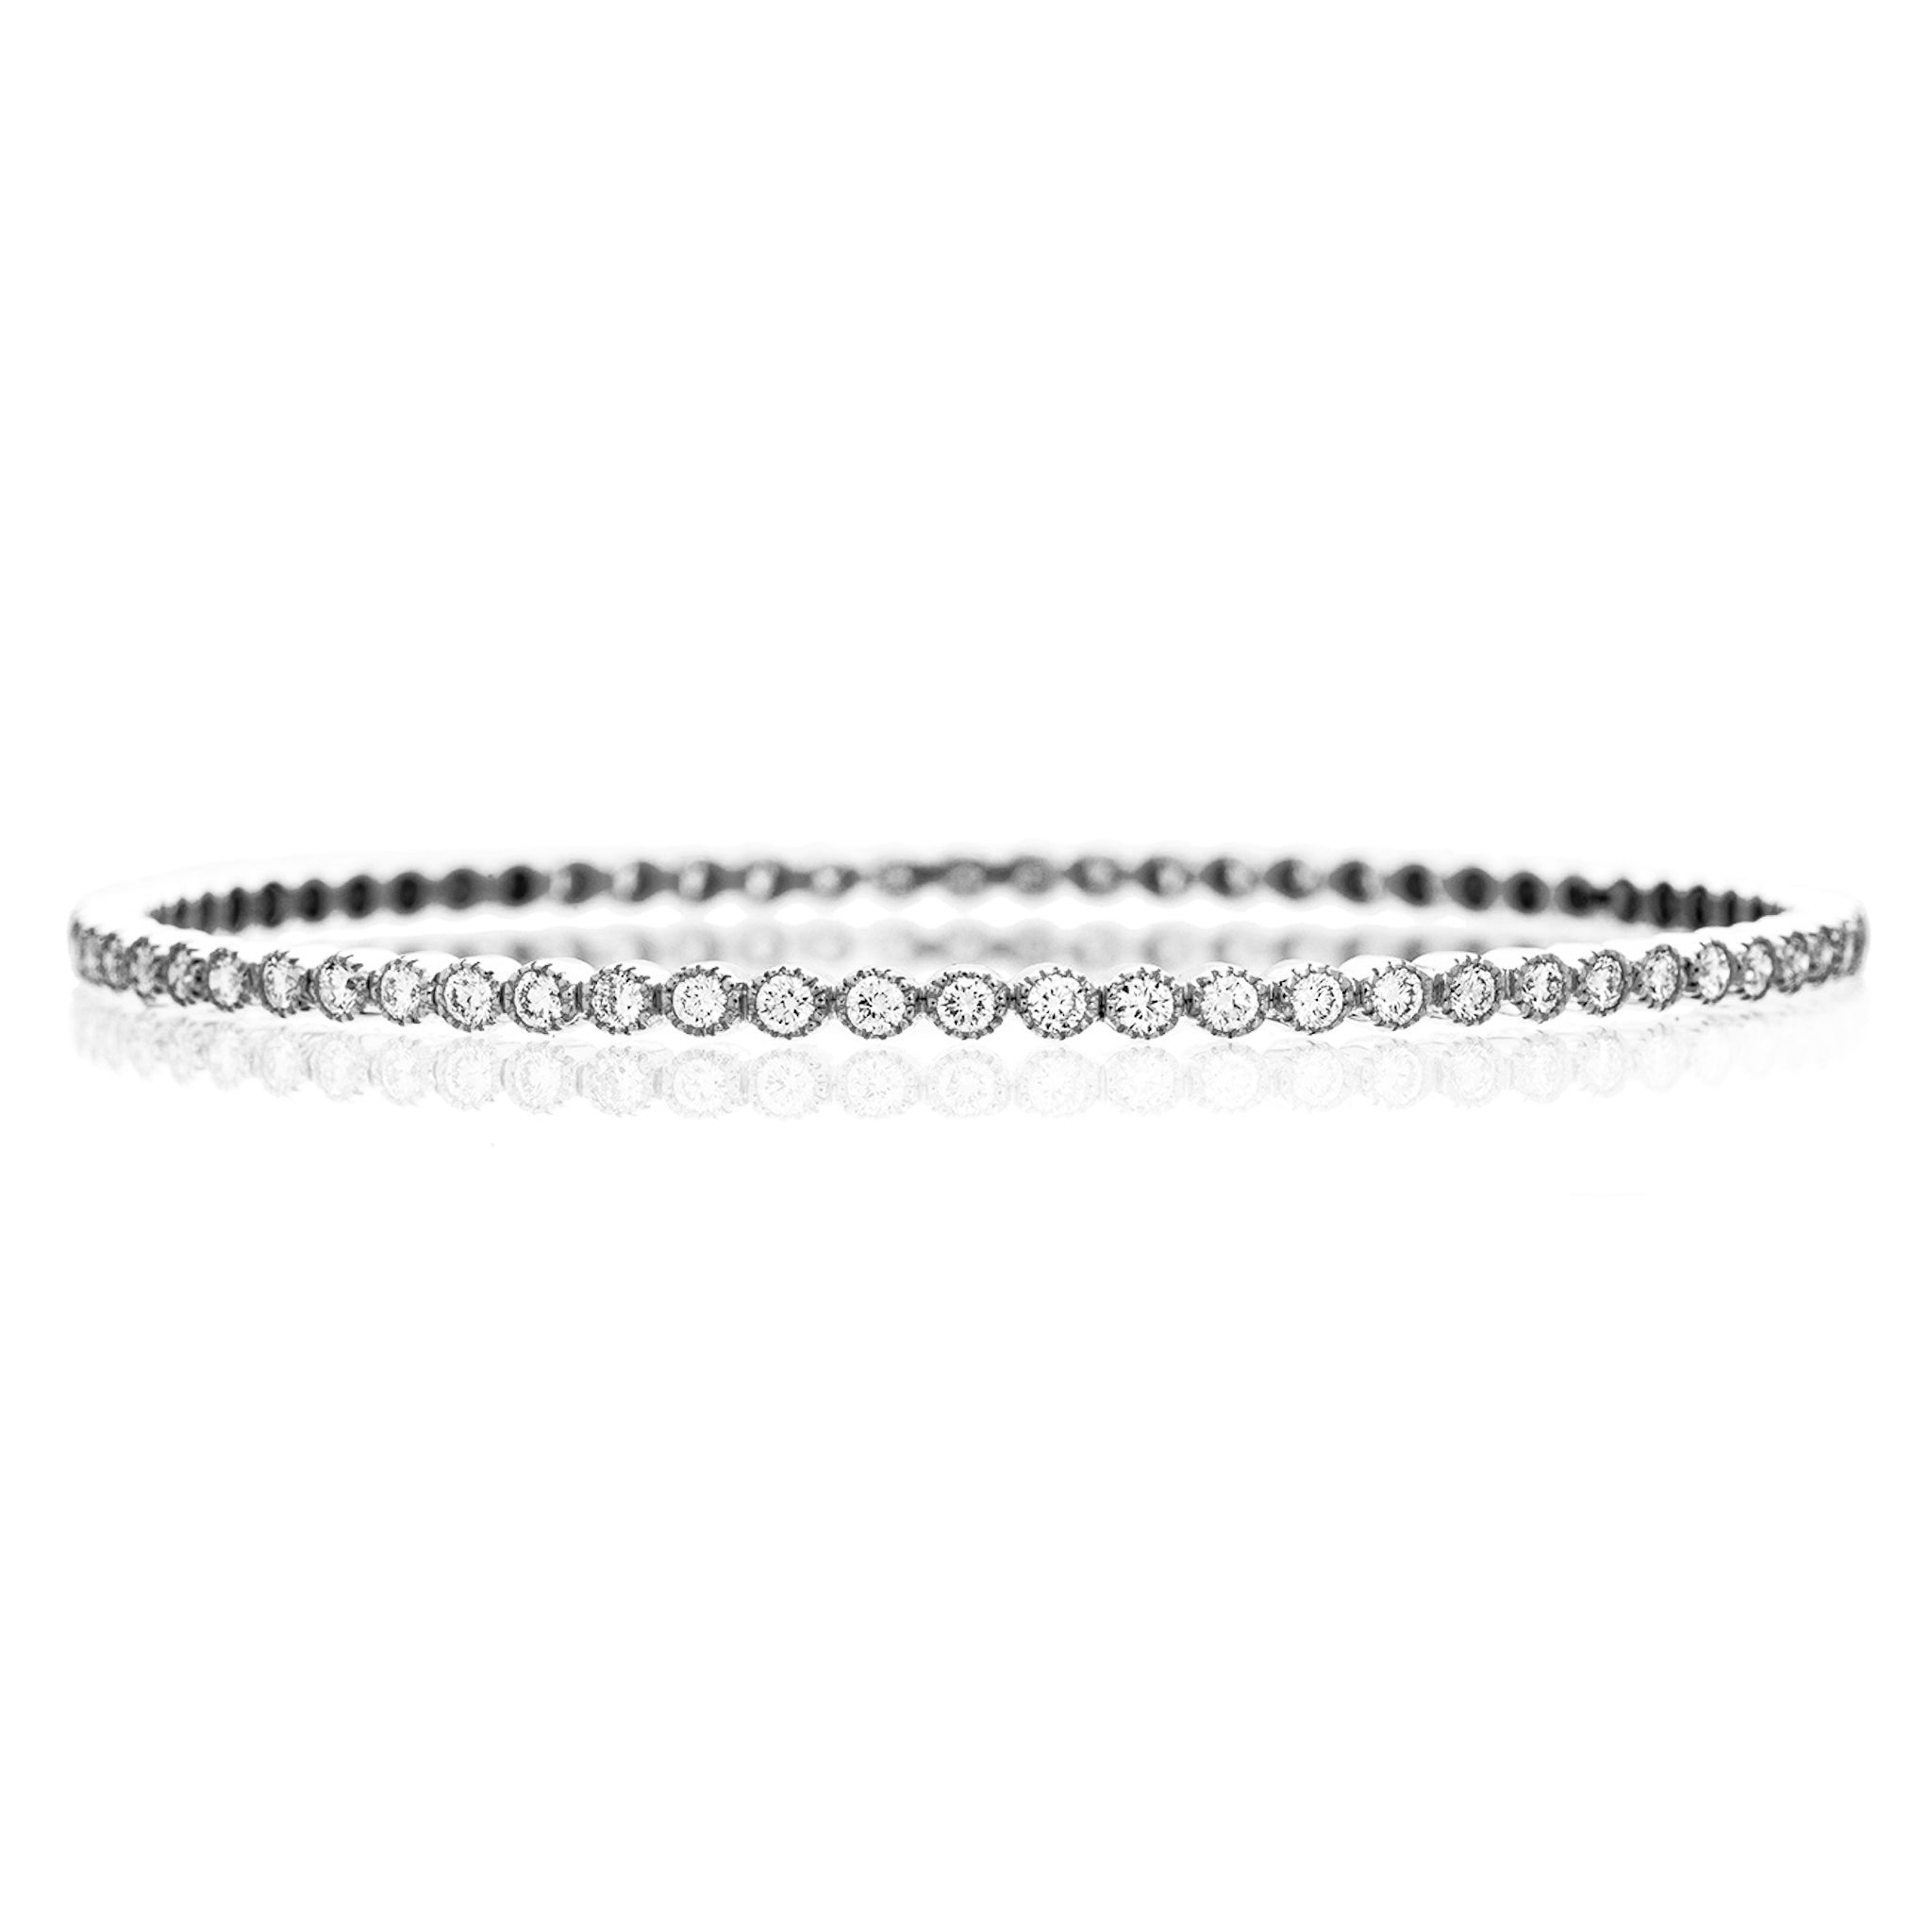 The Bezel Bangle